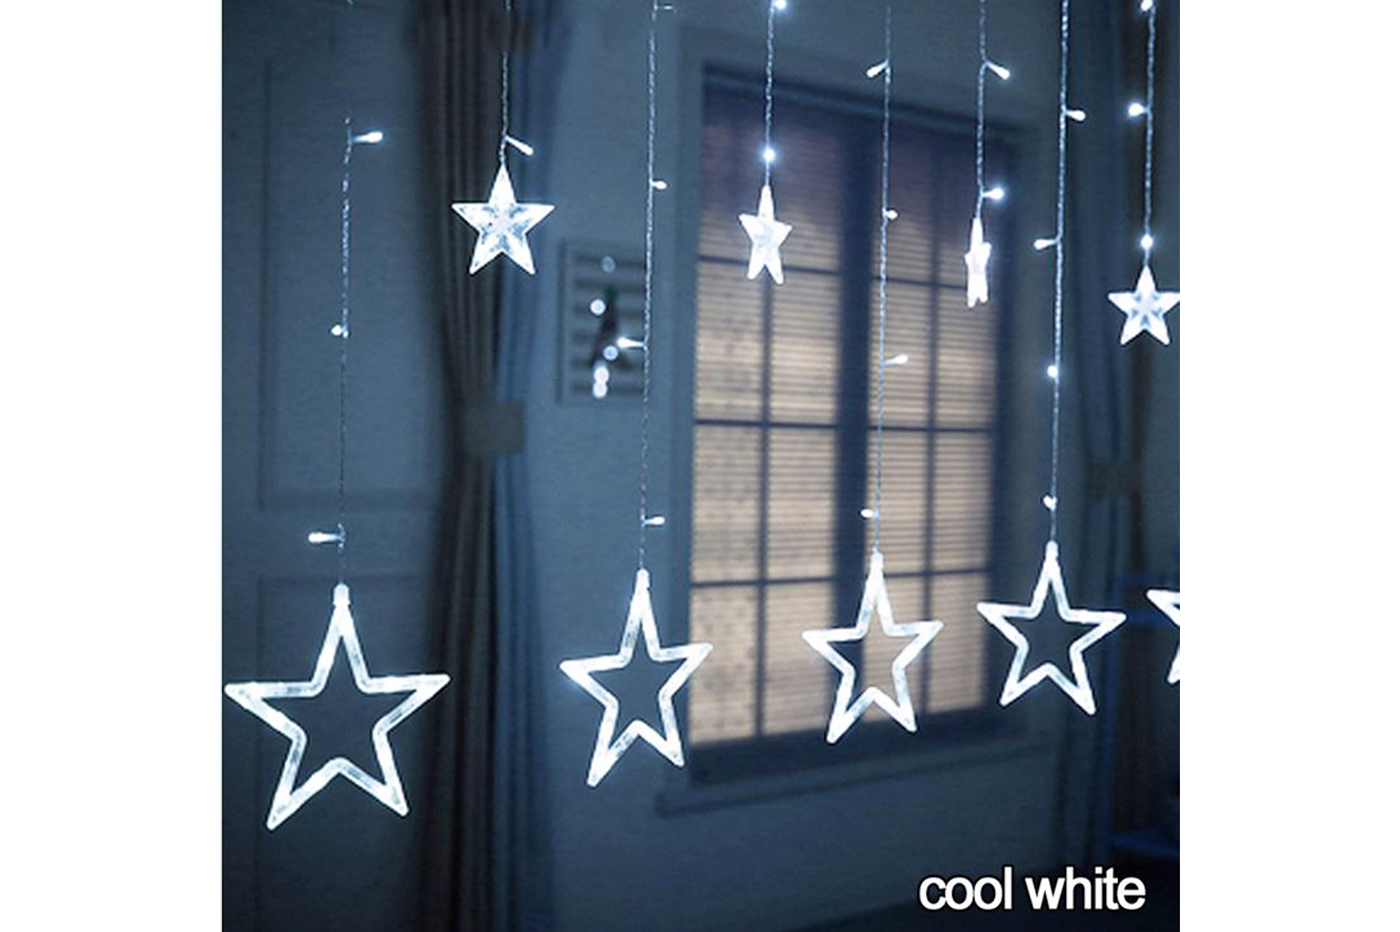 Catena luminosa led stelle luce fredda 2.5m allungabile decorazioni luci natale